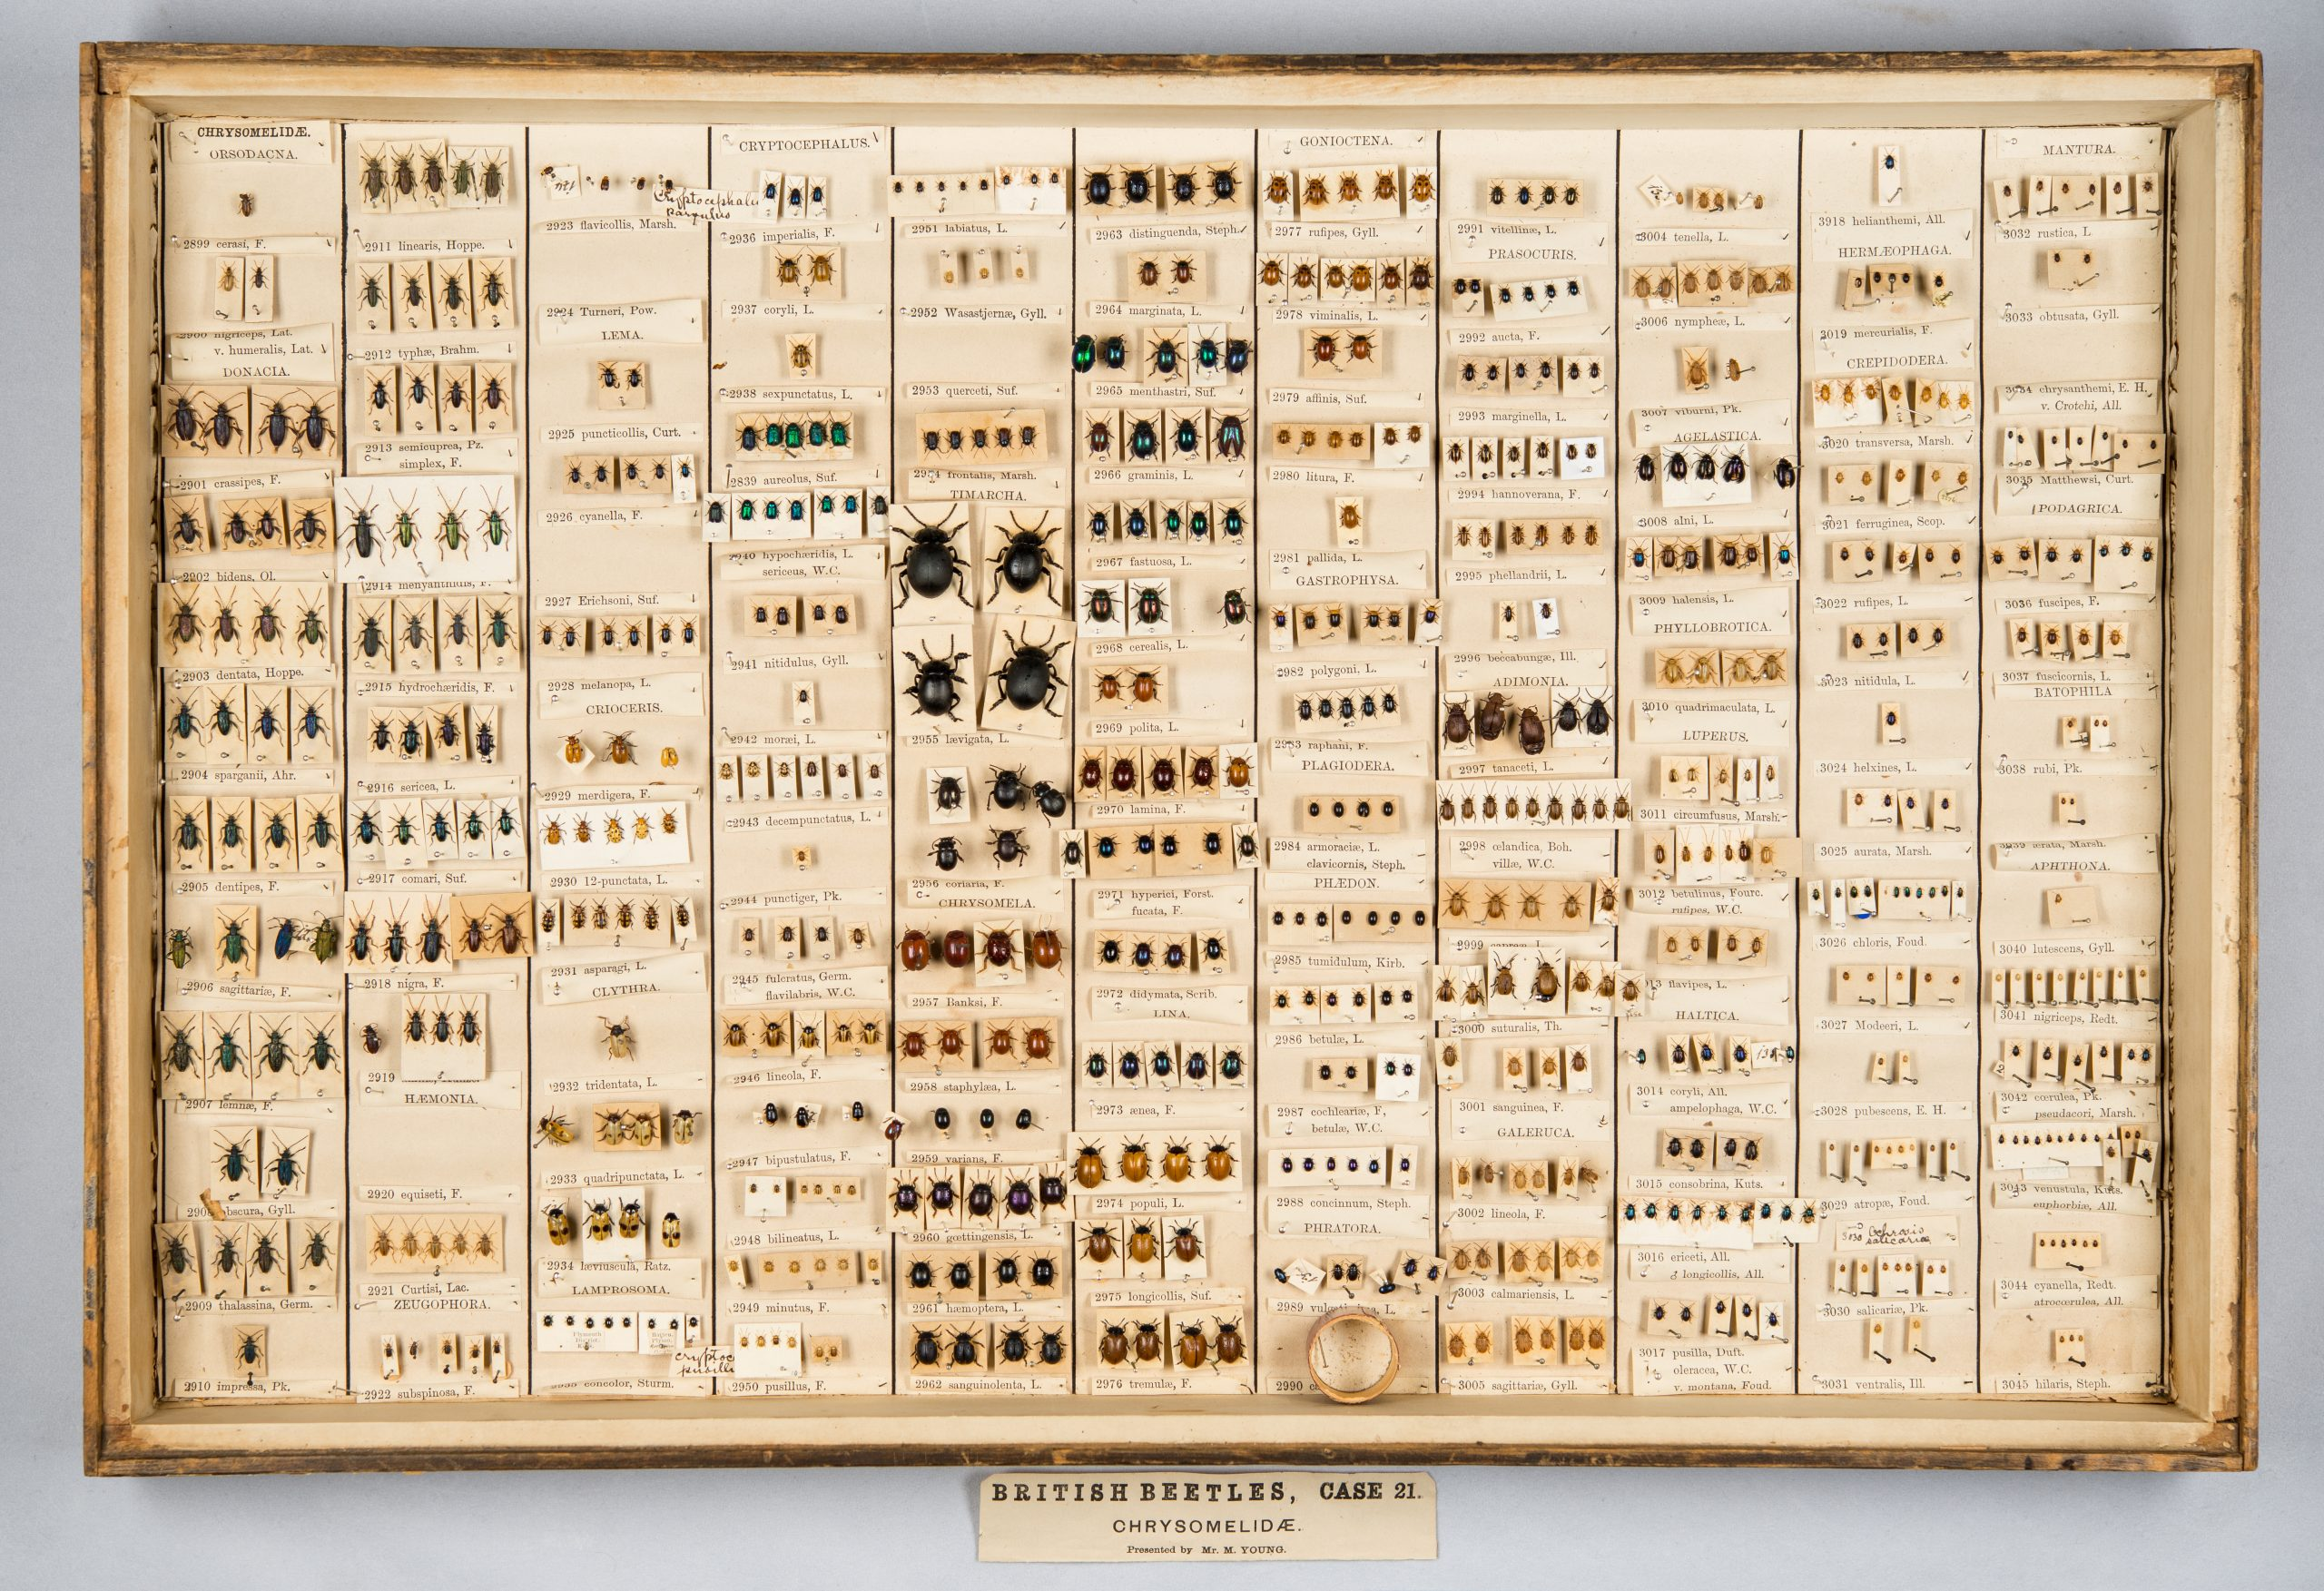 A collection of beetle specimens in a glass case